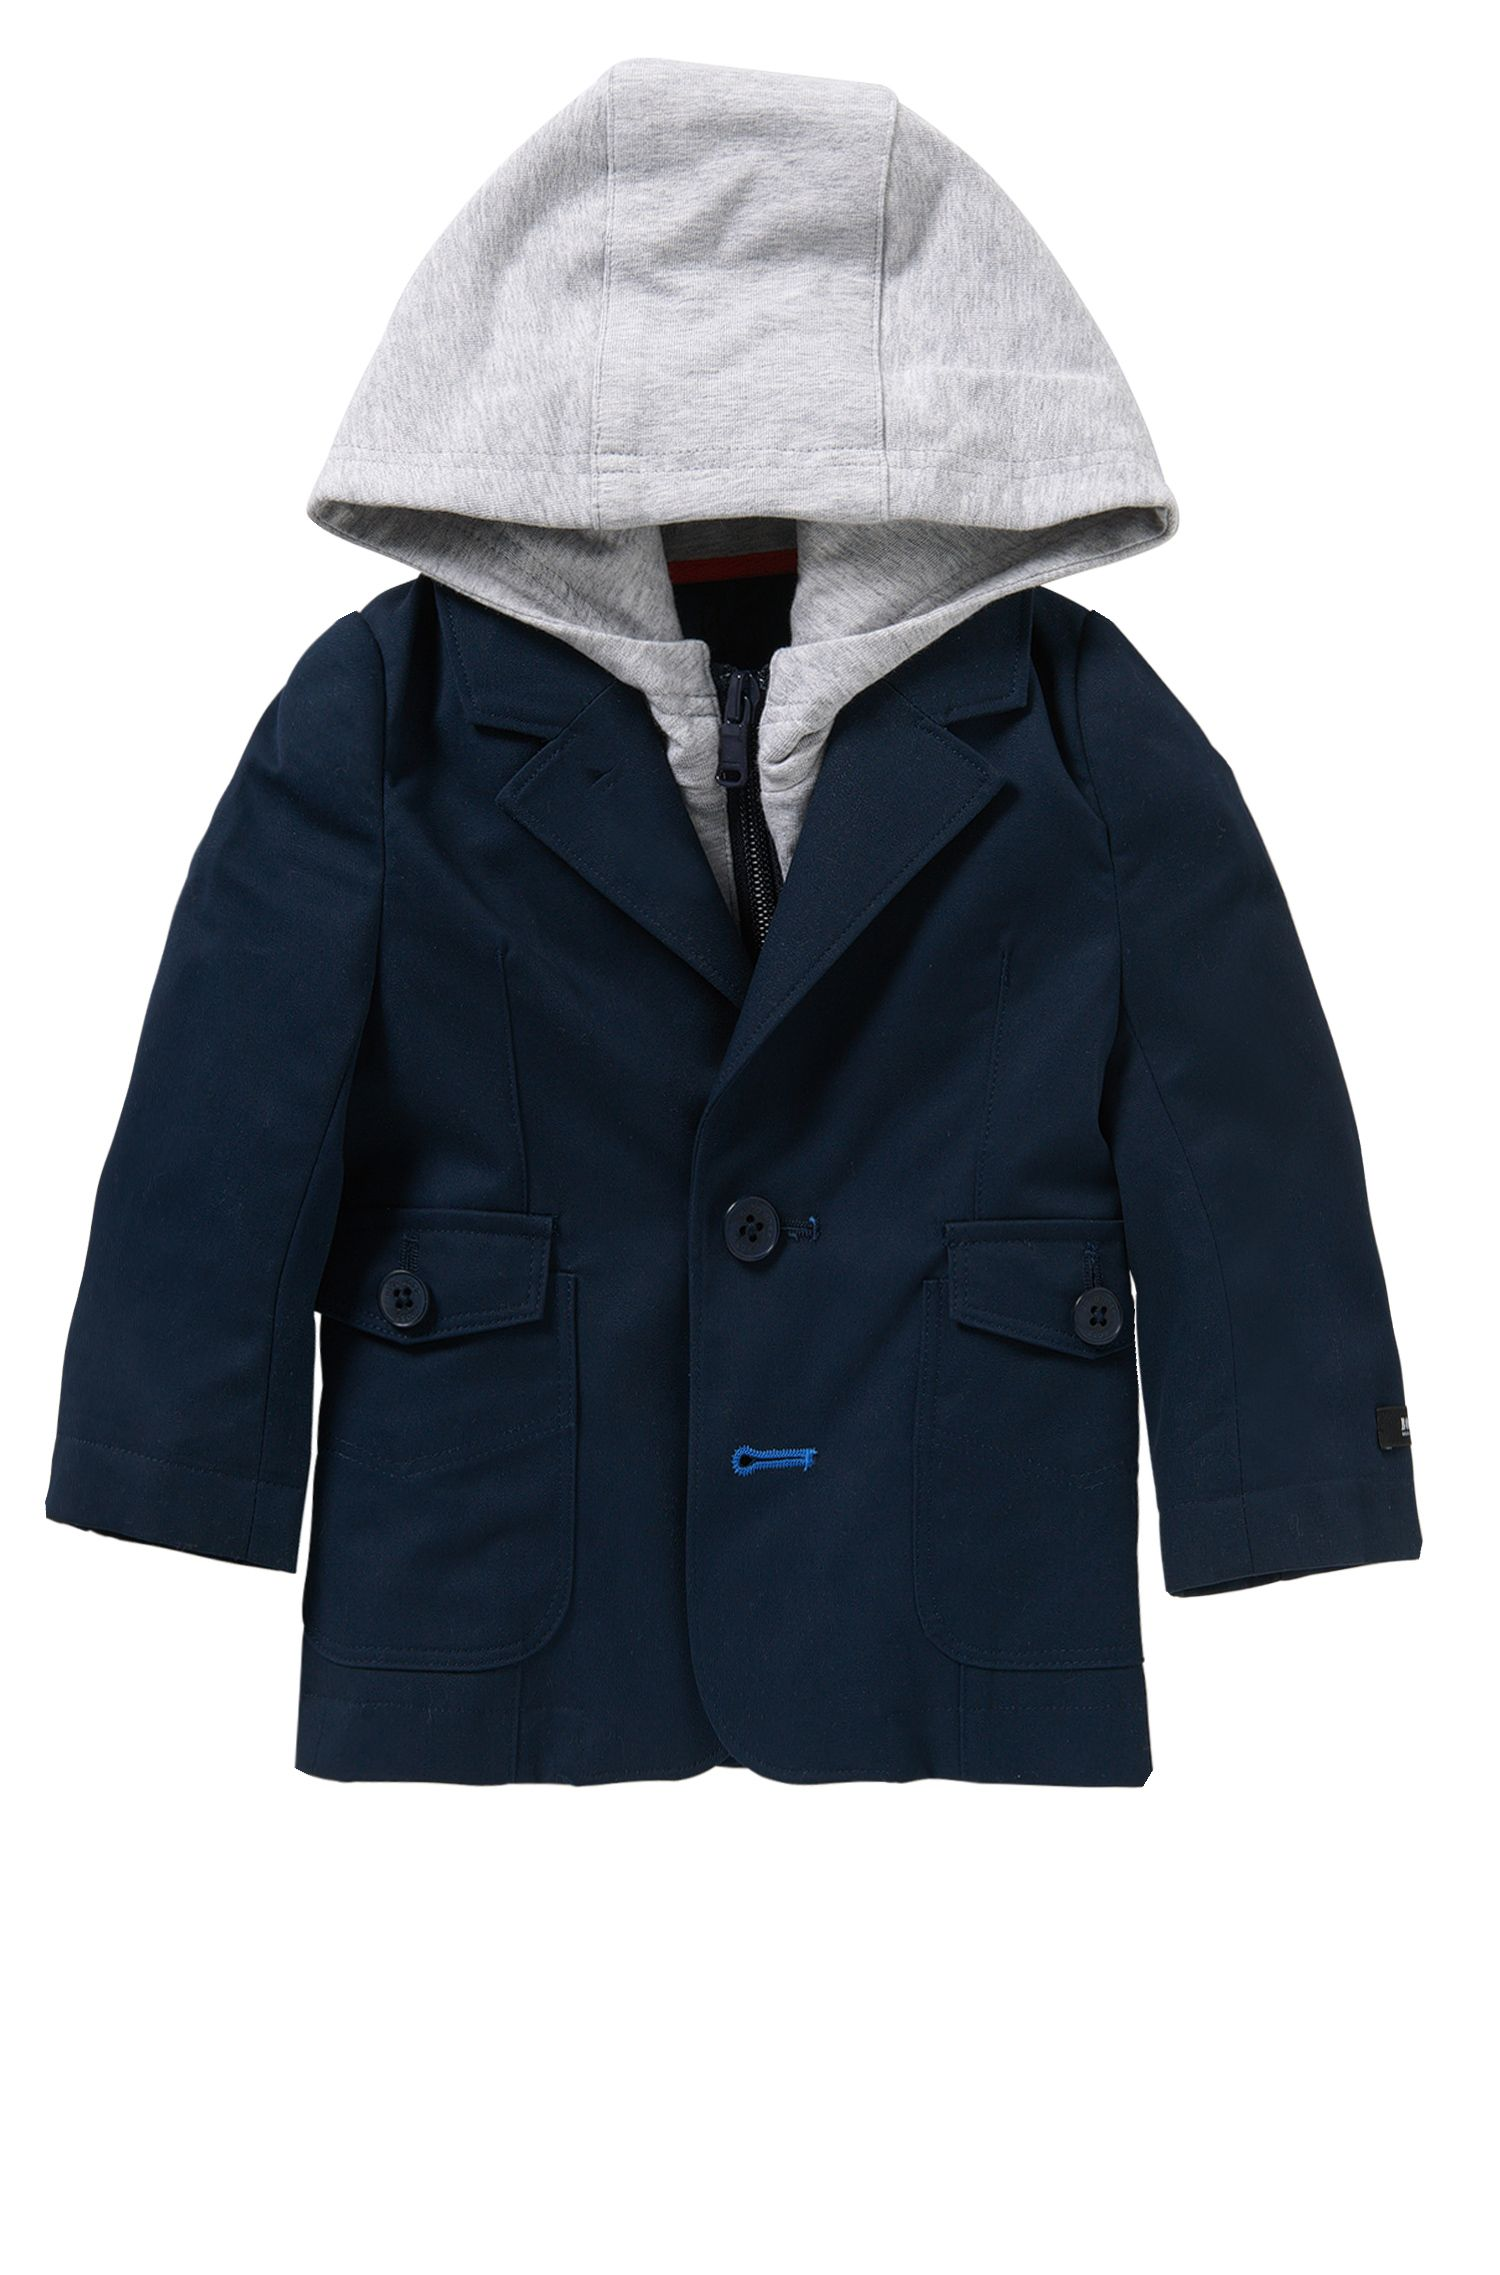 'J06138' | Newborn Cotton Sport Coat, Detachable Hood